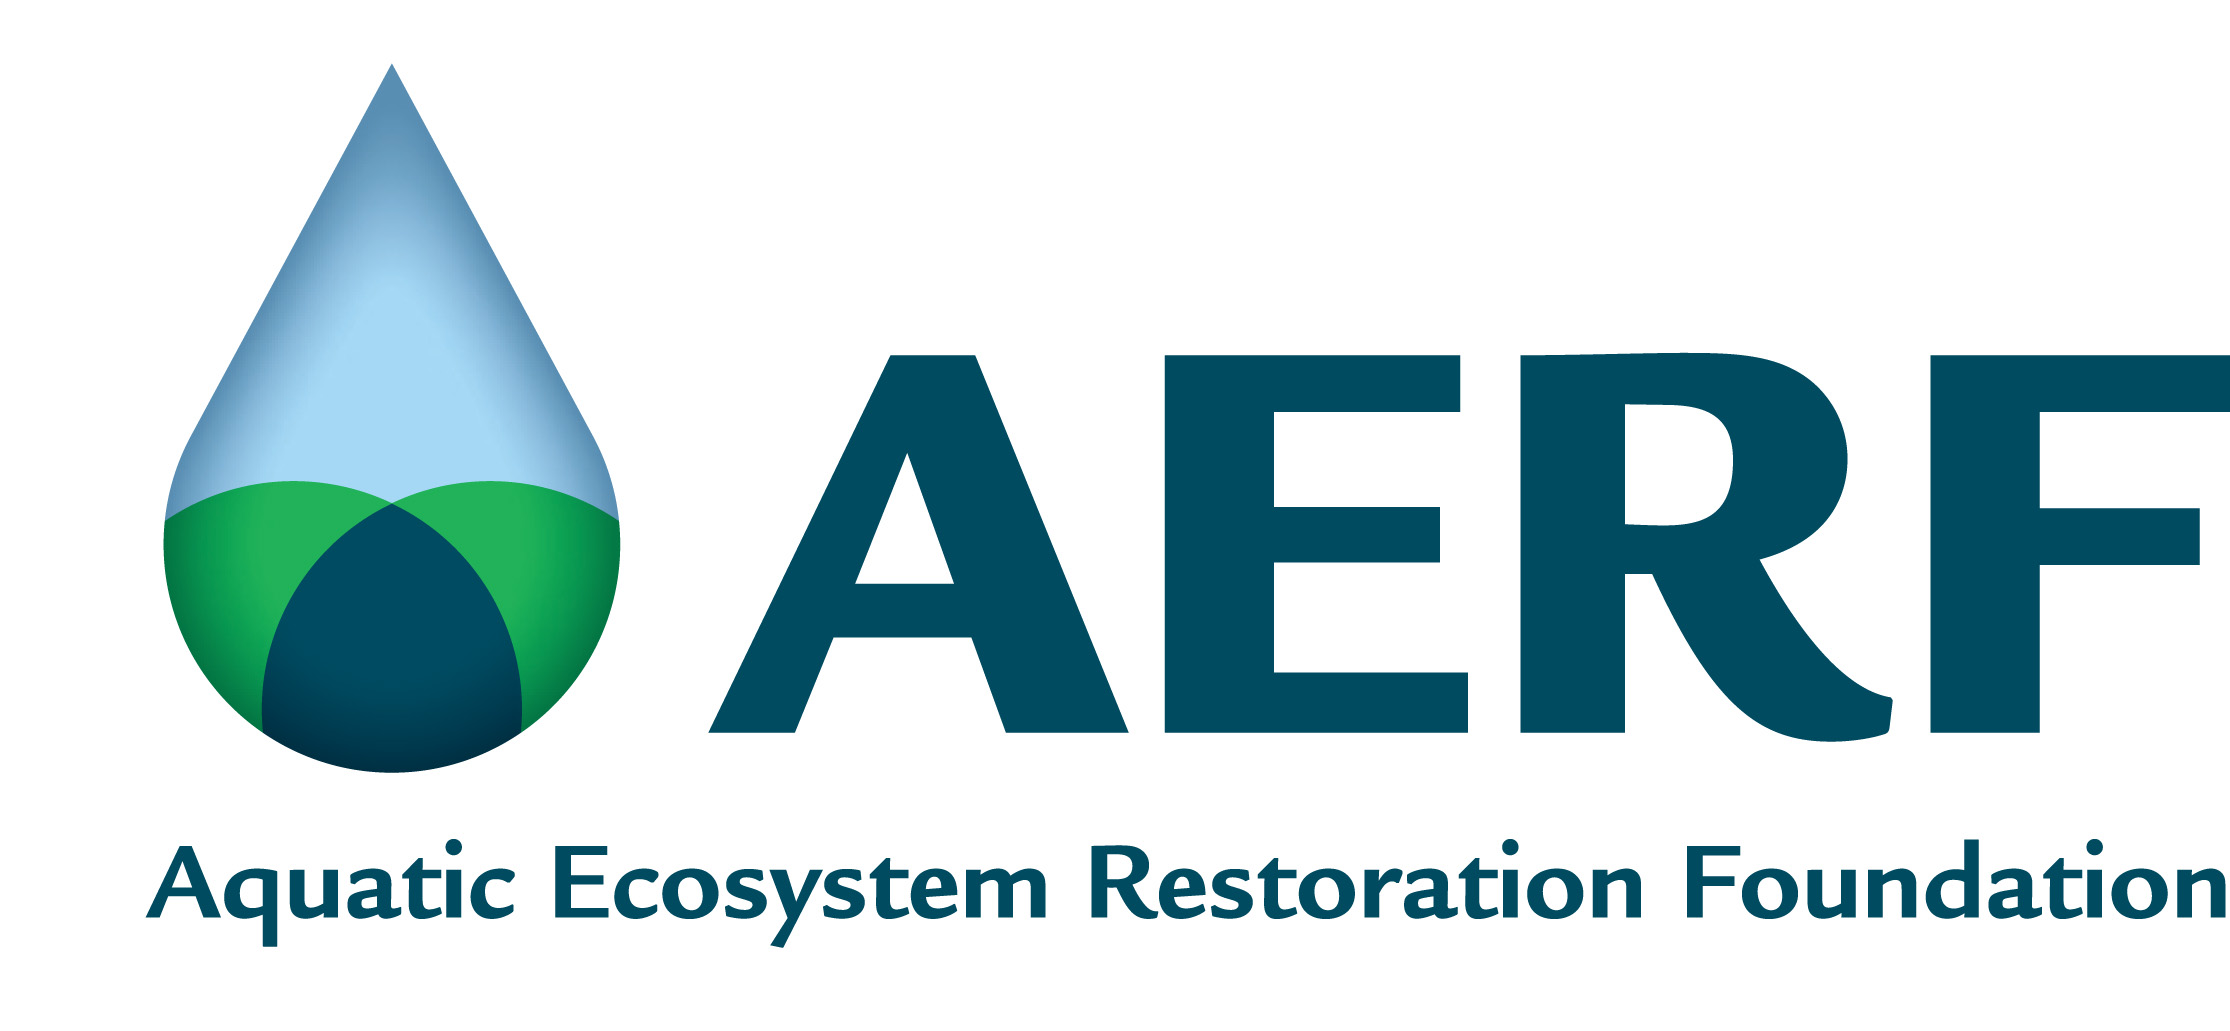 Aquatic Ecosystem Restoration Foundation